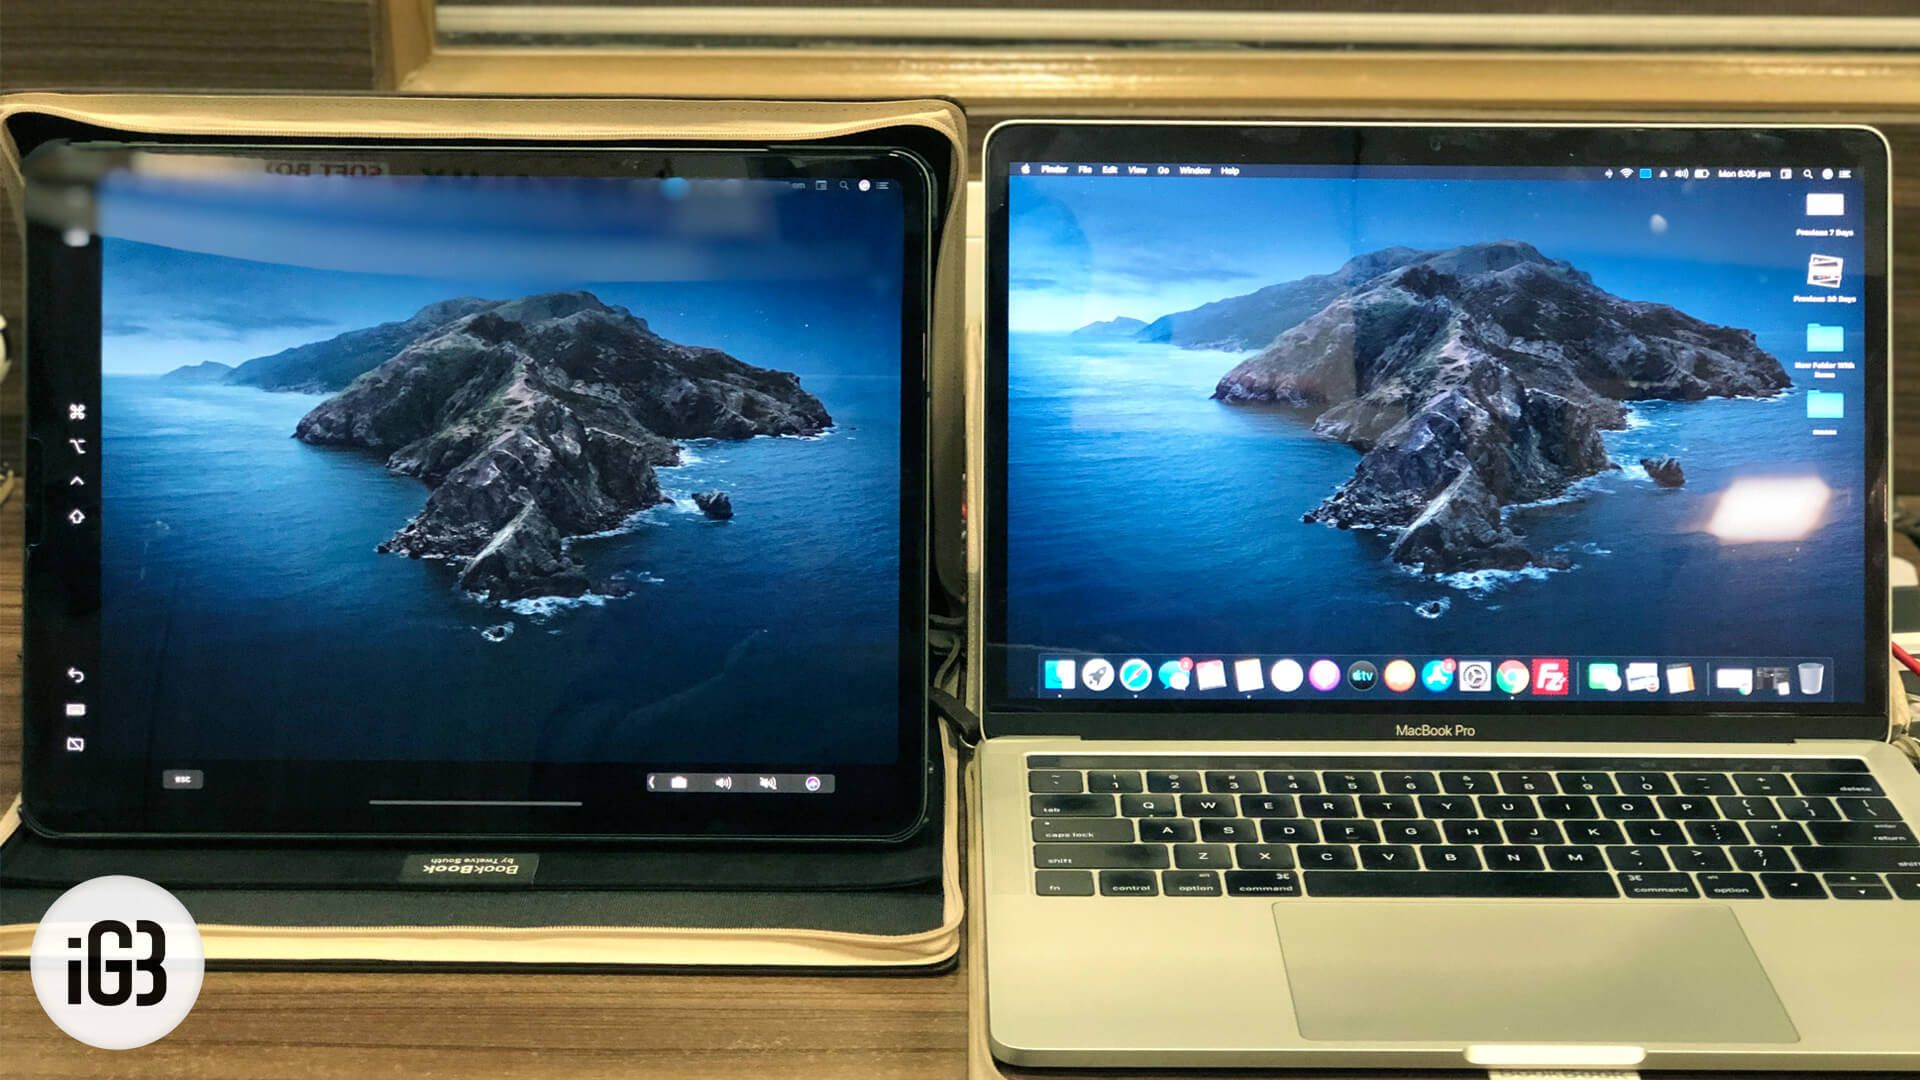 How to Use Sidecar in macOS Catalina to Turn iPad into Second Screen